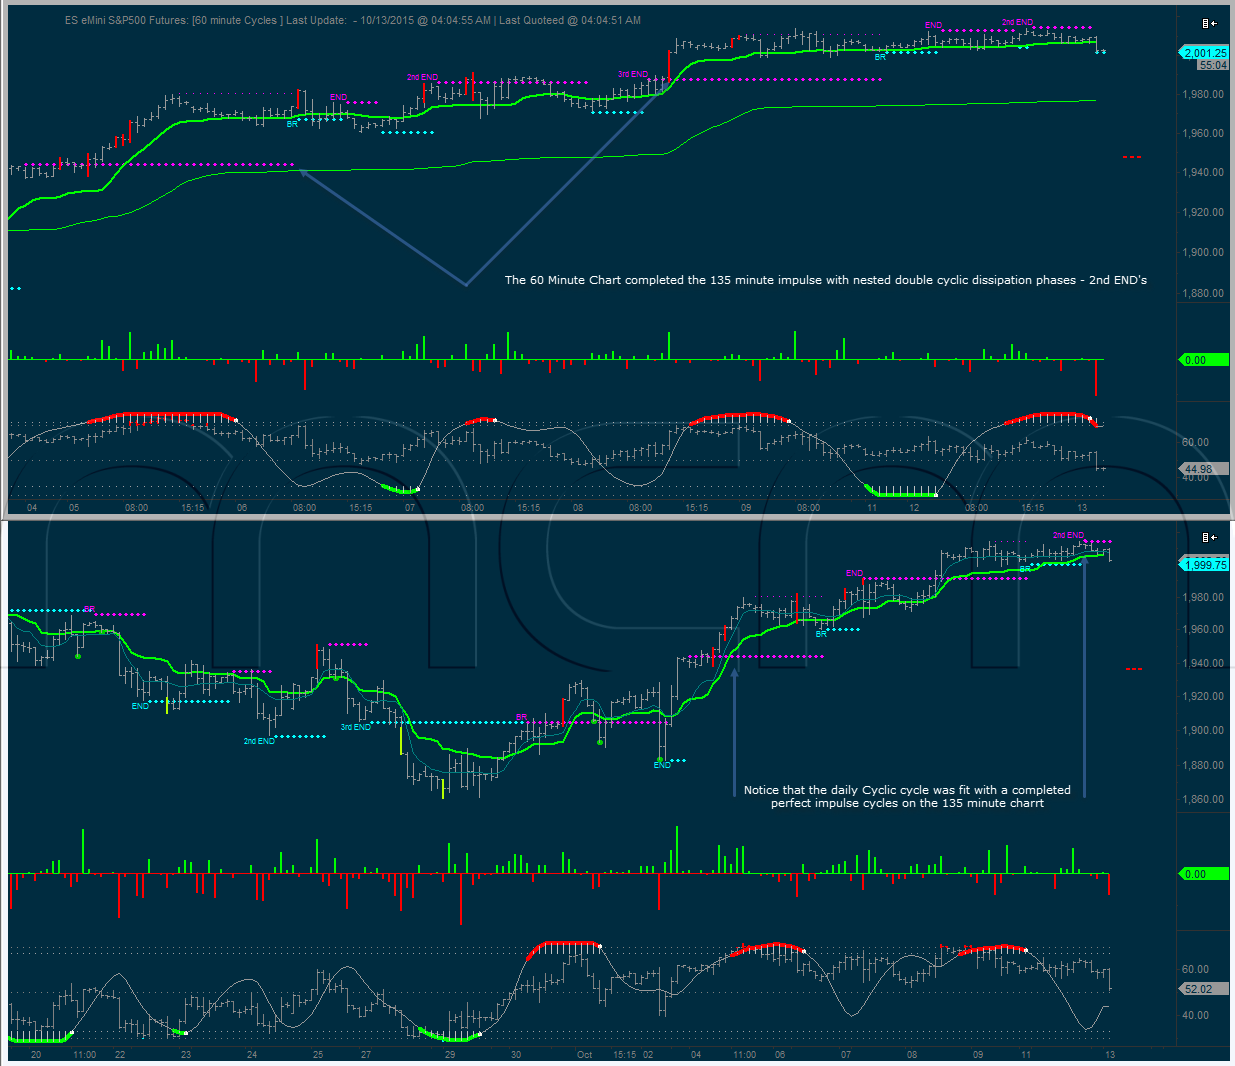 60 minute and 135 minute Cycle Charts